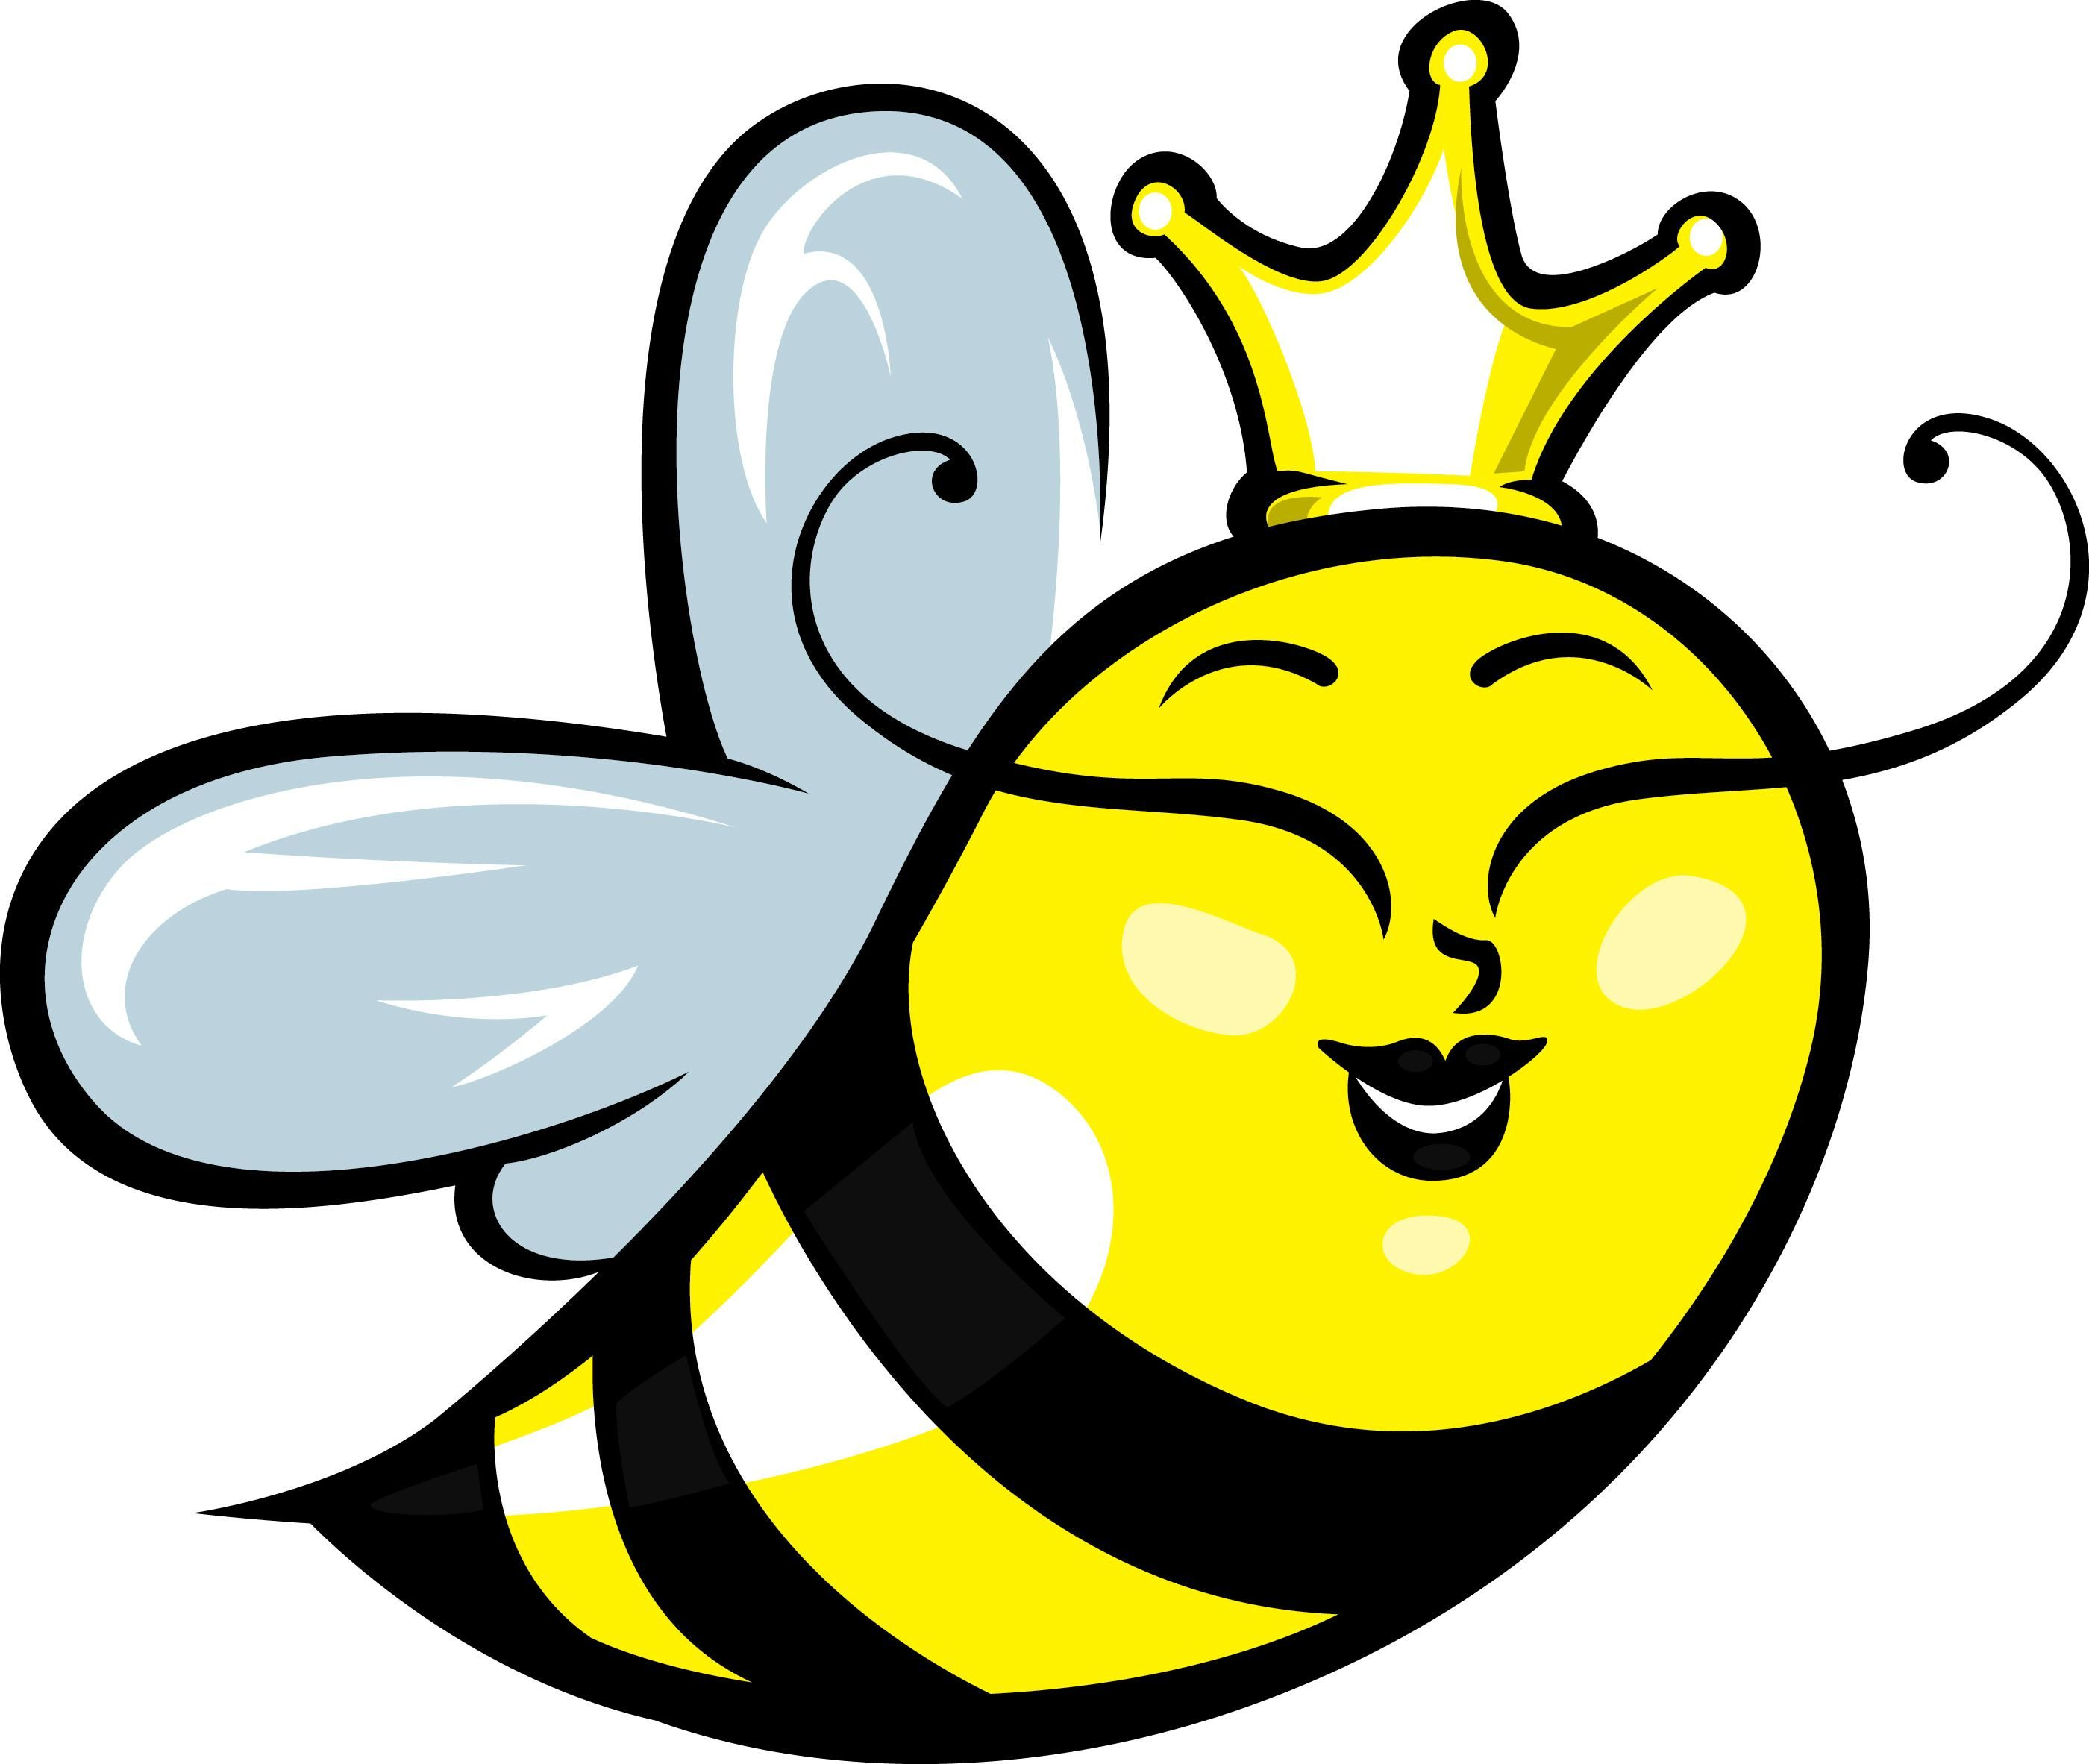 queen bee clipart at getdrawings com free for personal use queen rh getdrawings com bee clip art outline bee clipart to color